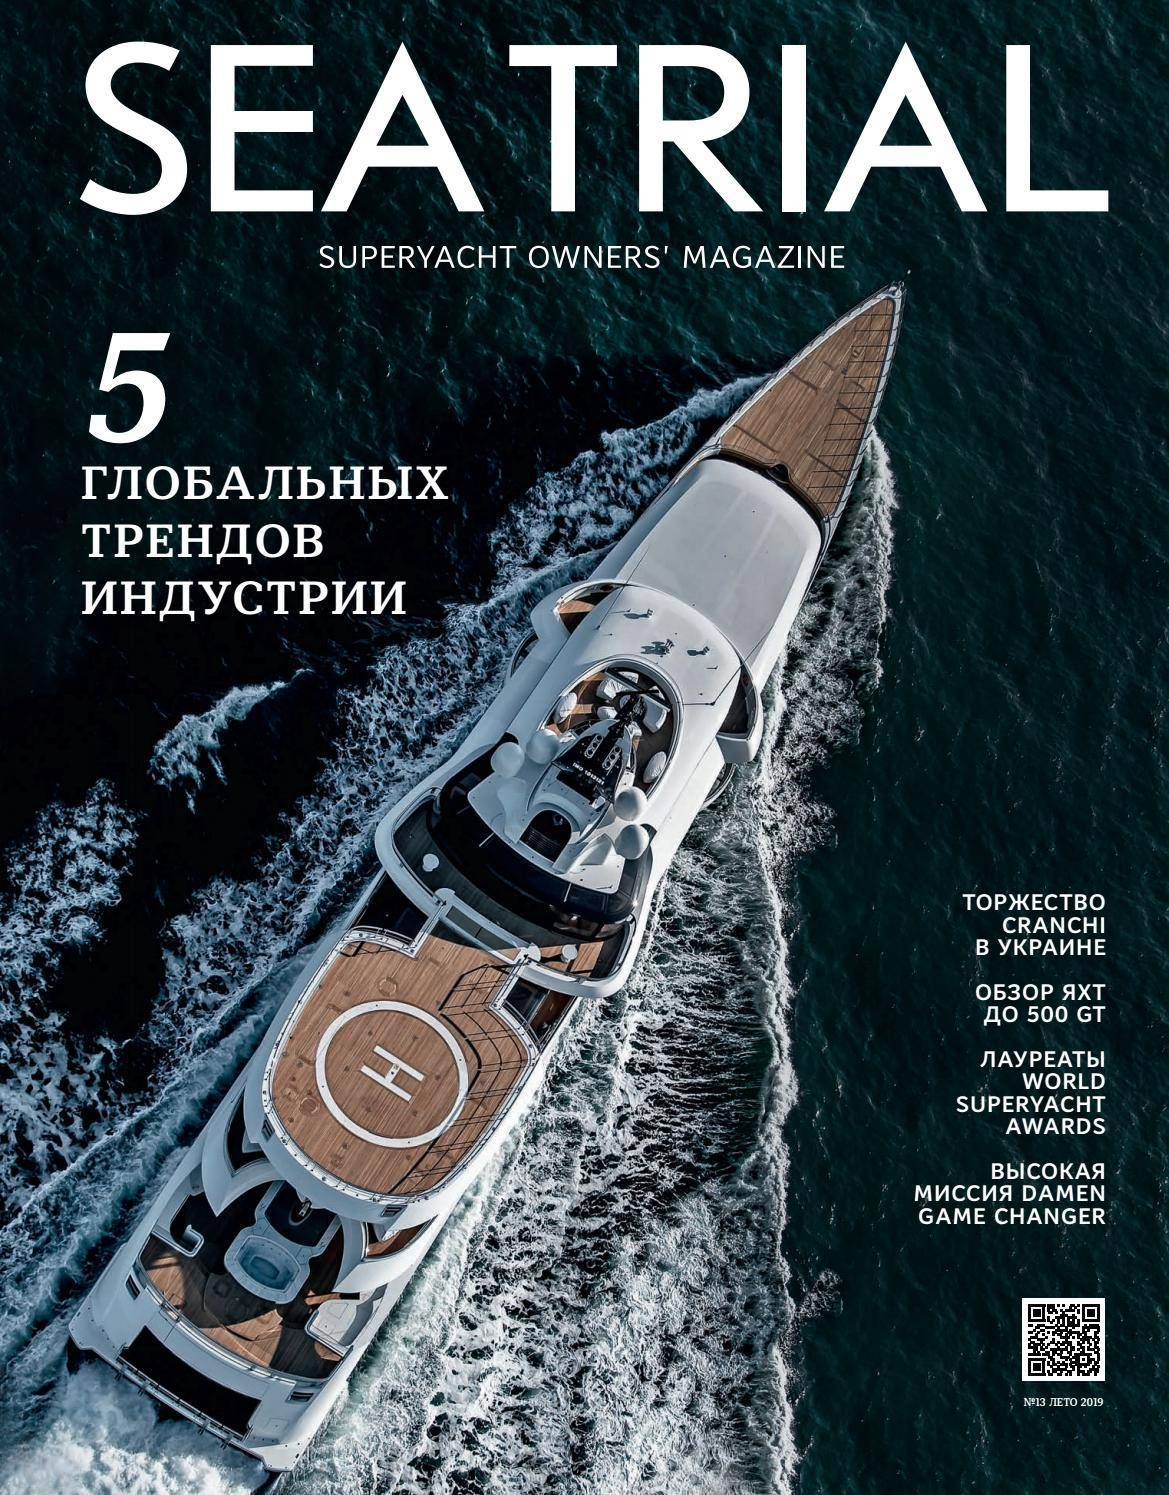 Fountaine pajot my 44 получил награду european power boat of the year 2018